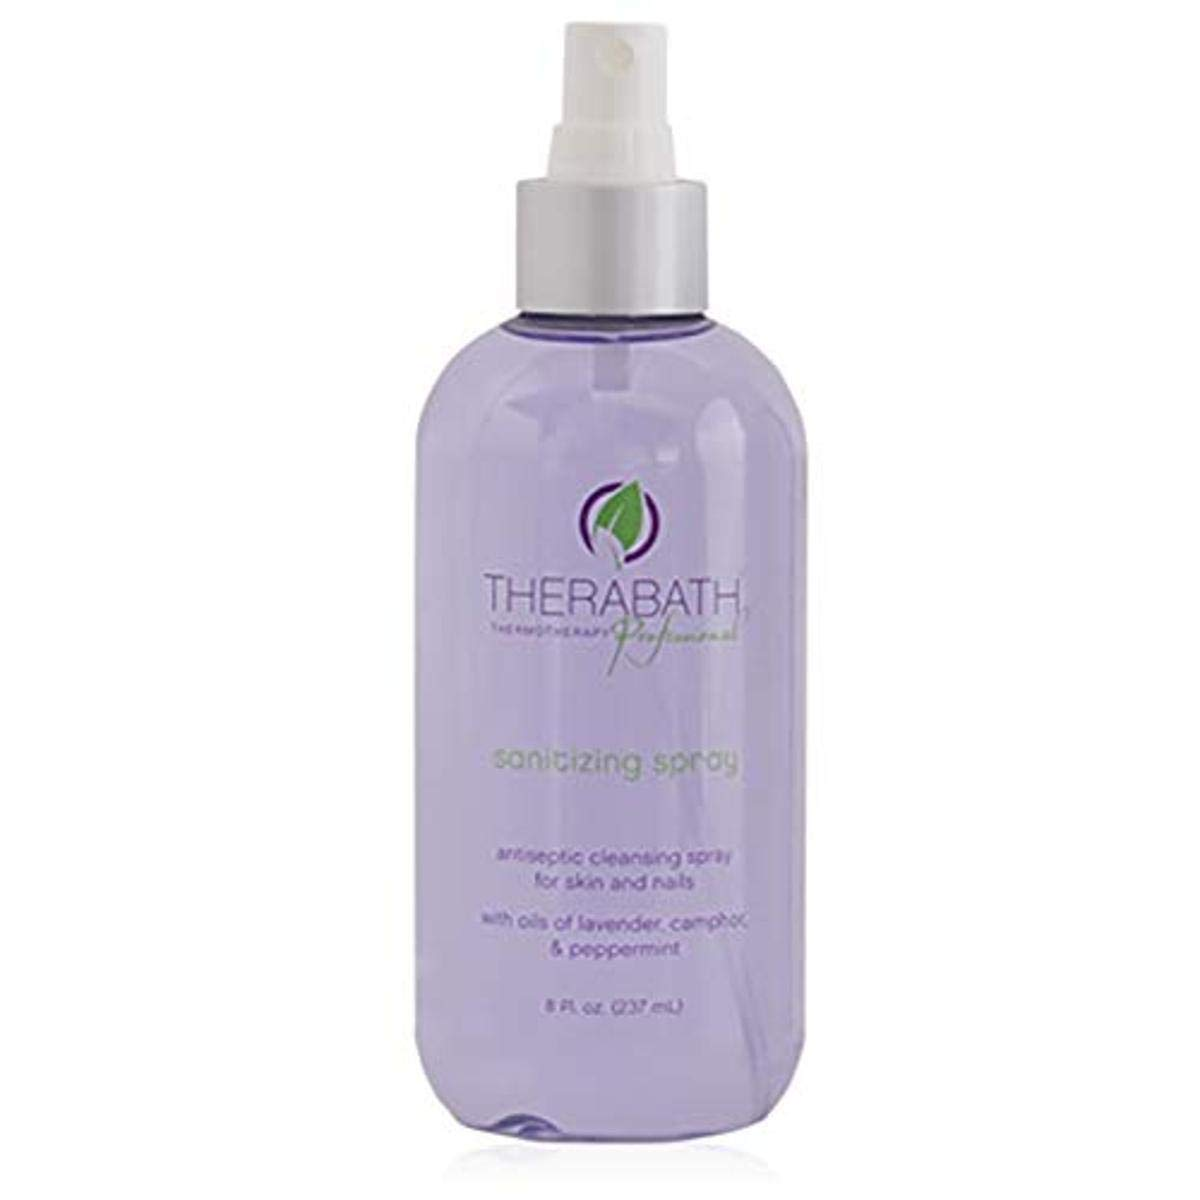 Therabath-48430 Sanitizing Spray Cleansing Max 77% OFF Antiseptic for Special price for a limited time